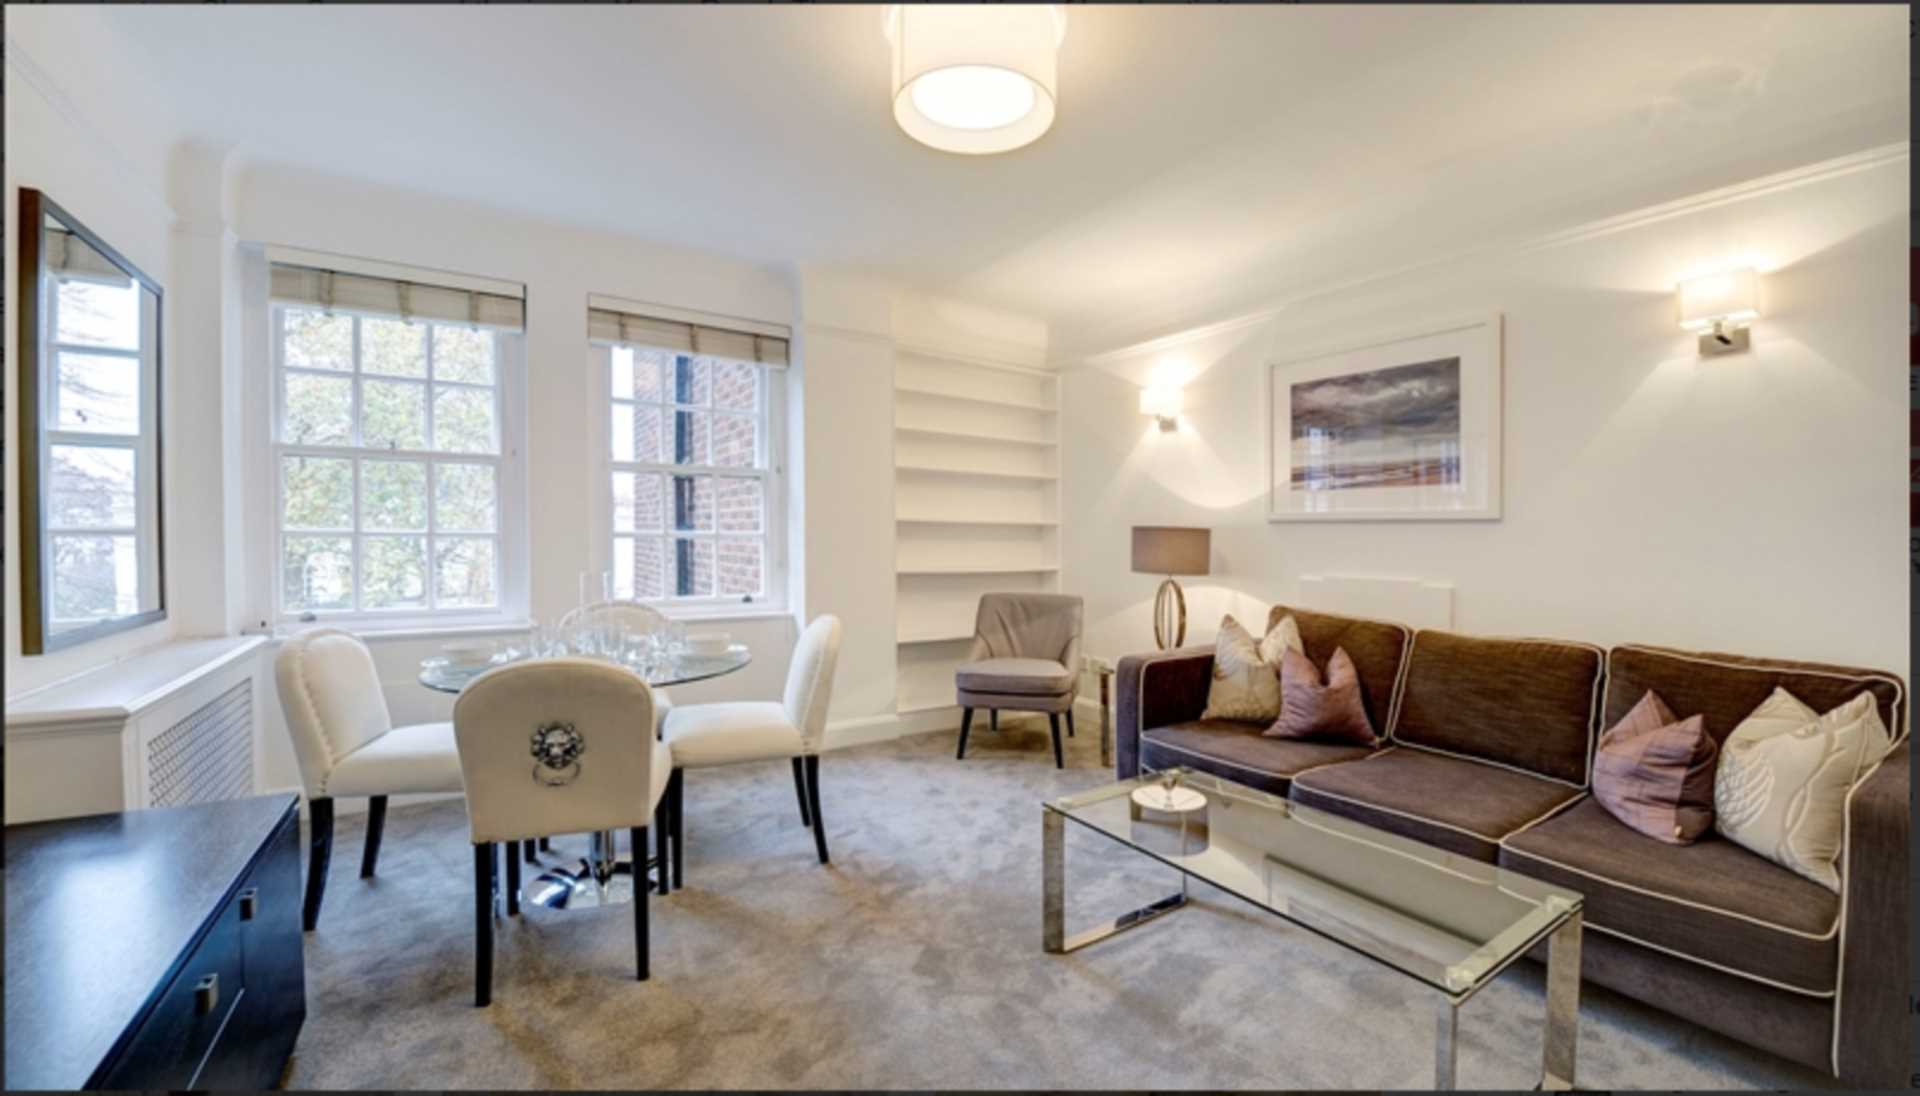 Property To Rent In London L2L128-1177